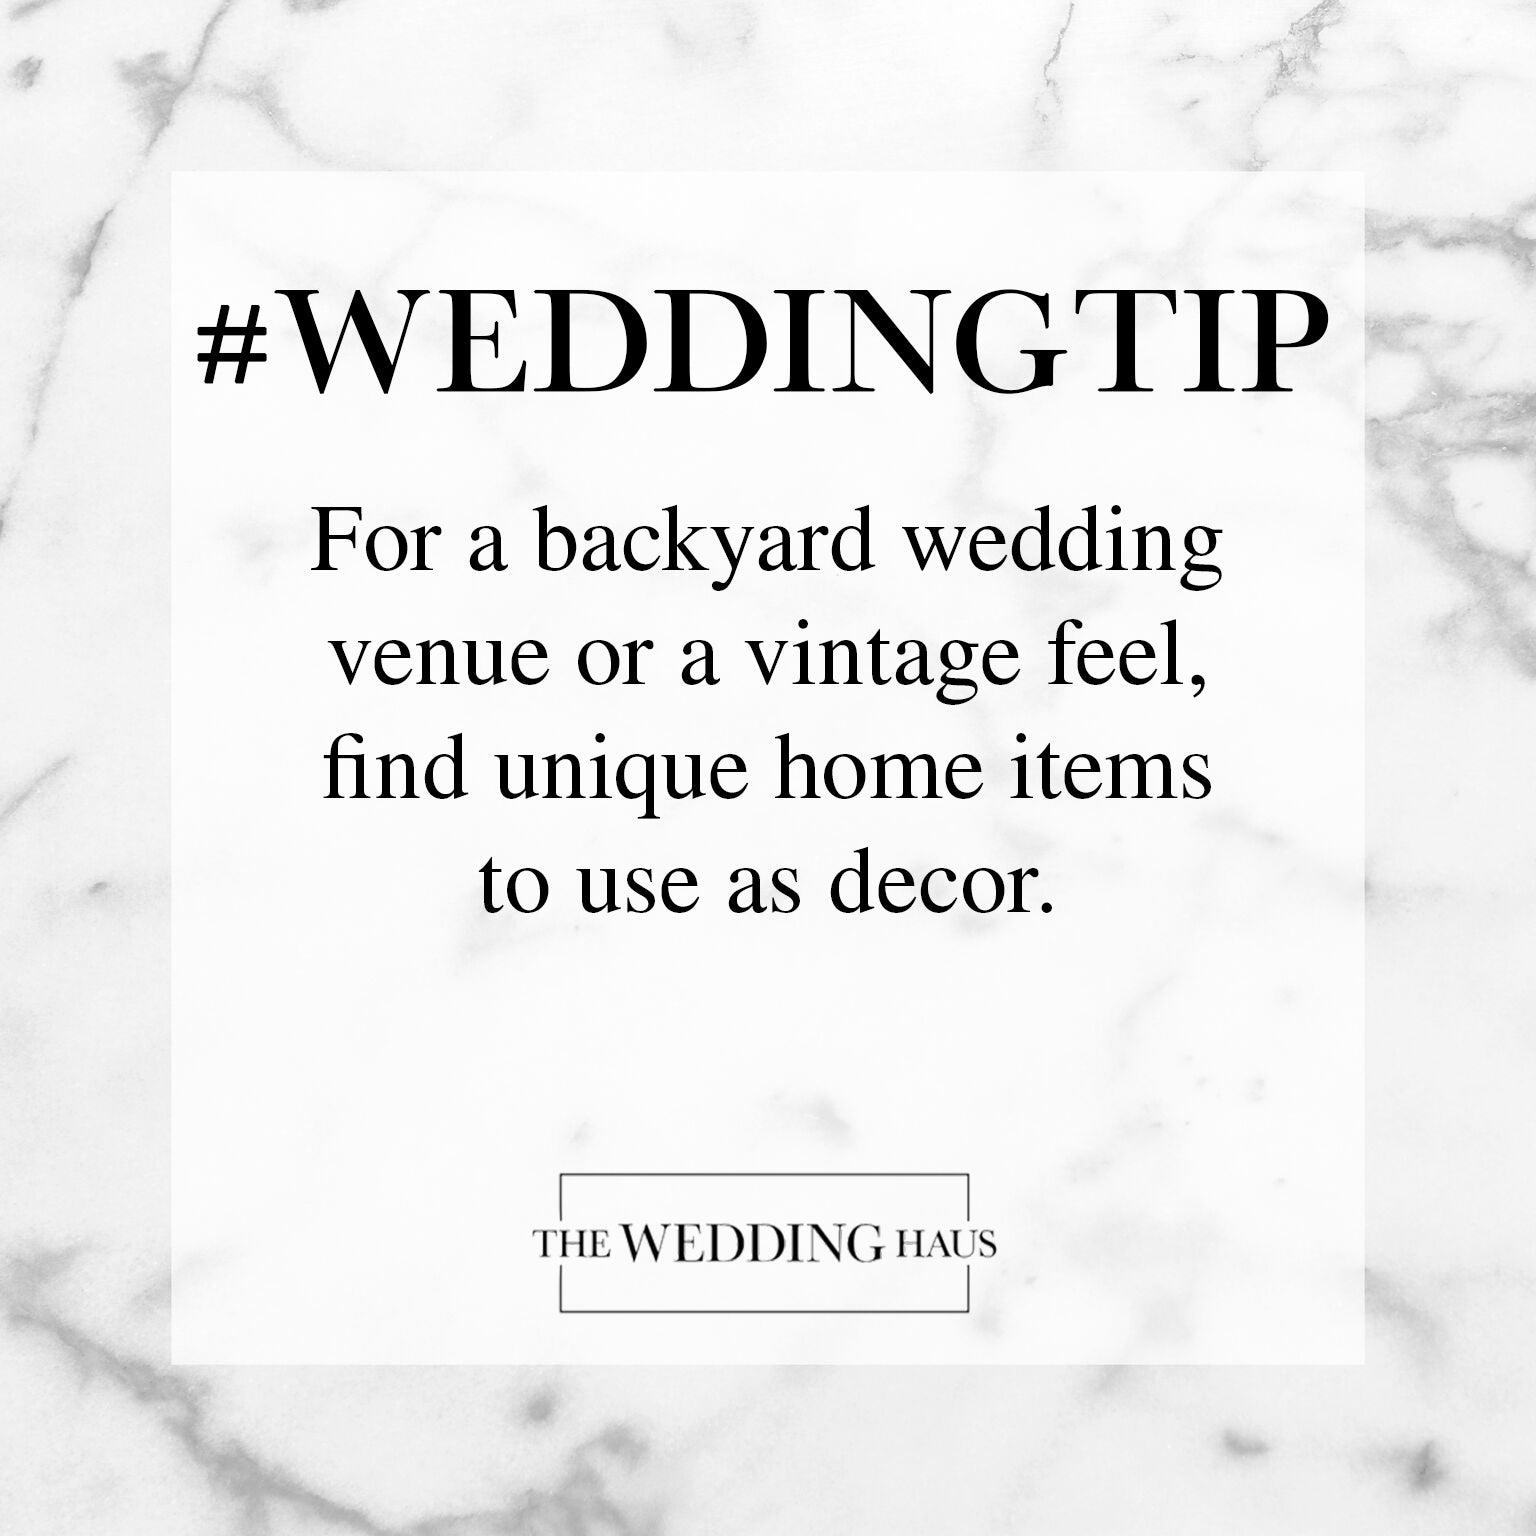 Backyard Wedding Tip from The Wedding Haus